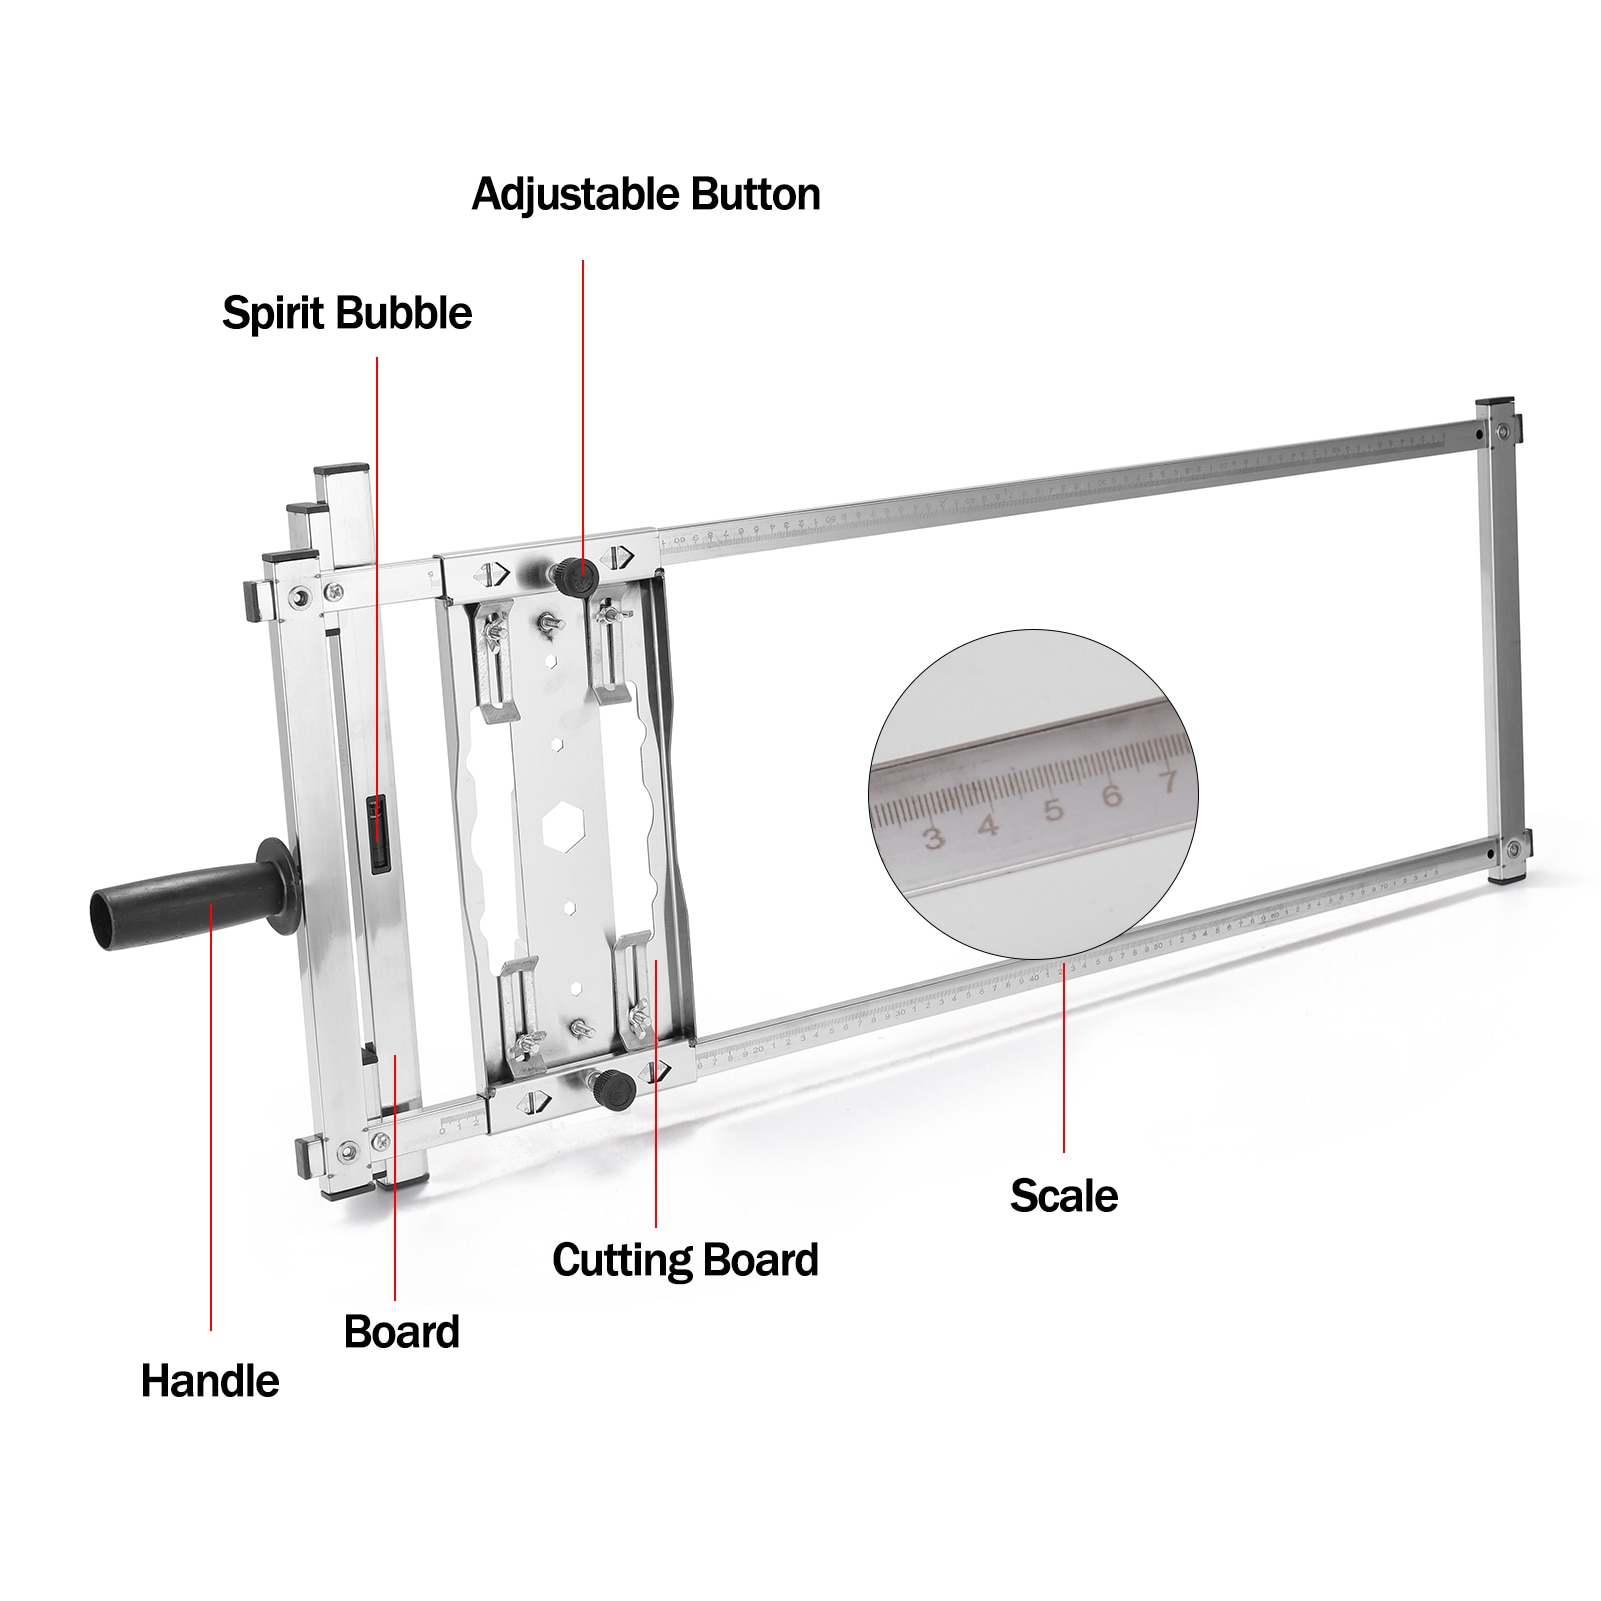 Machine Guide Positioning Cutting Board Tools Multifunction Electricity Circular Saw Trimmer Woodworking Router Cutting Tools enlarge